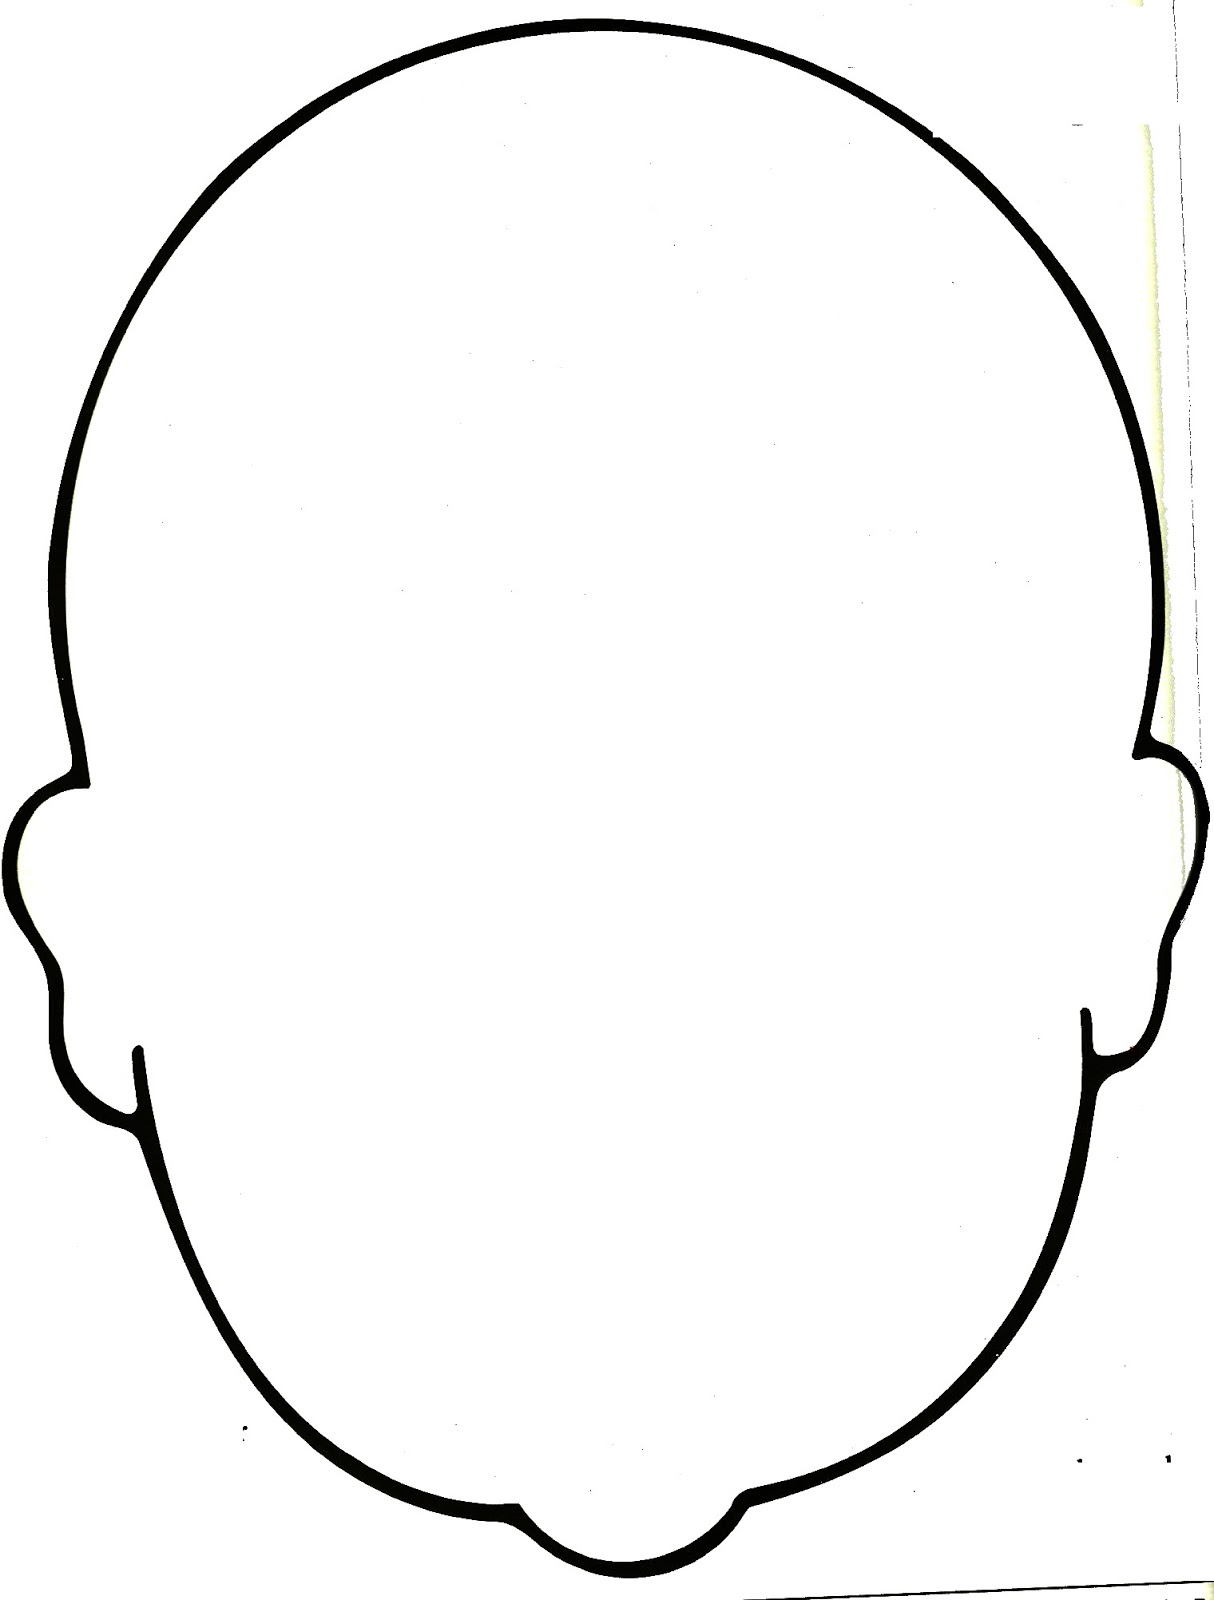 Blank Human Face Template - ClipArt Best